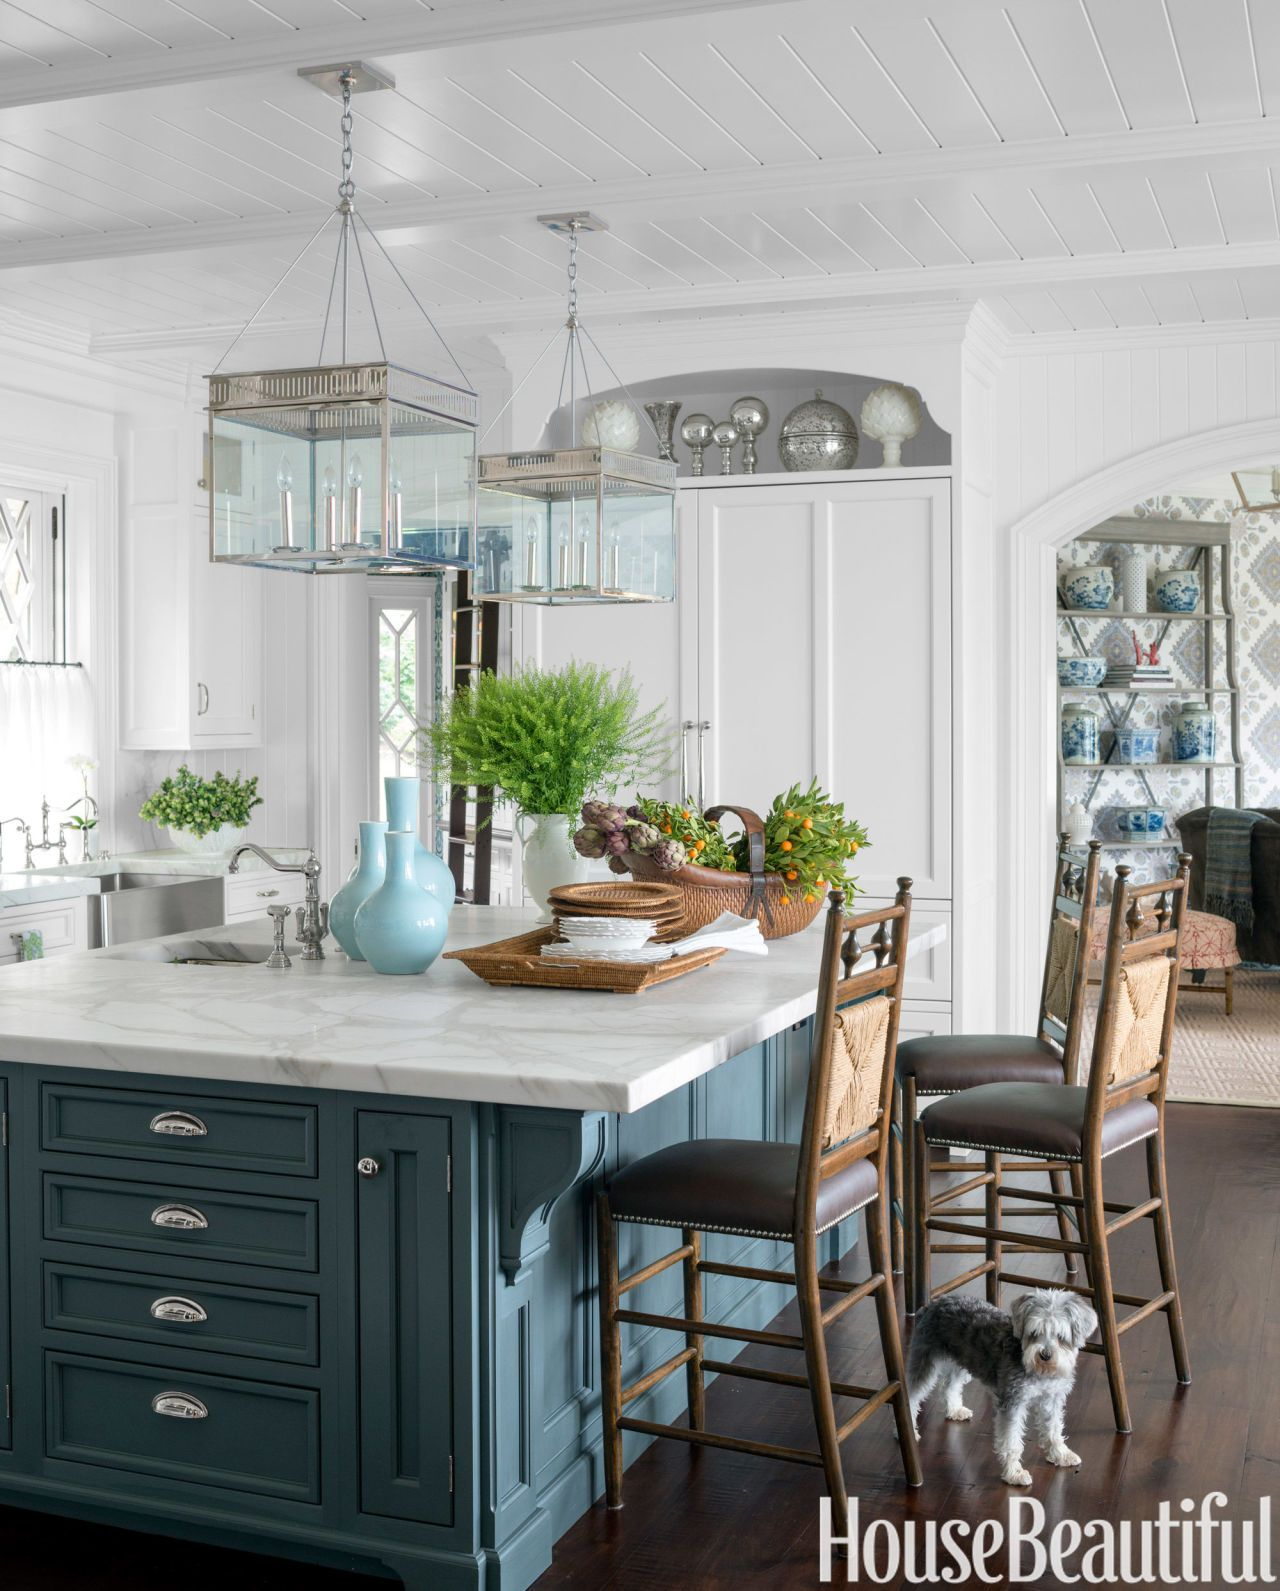 Awesome Lee Ann Thornton Kitchen